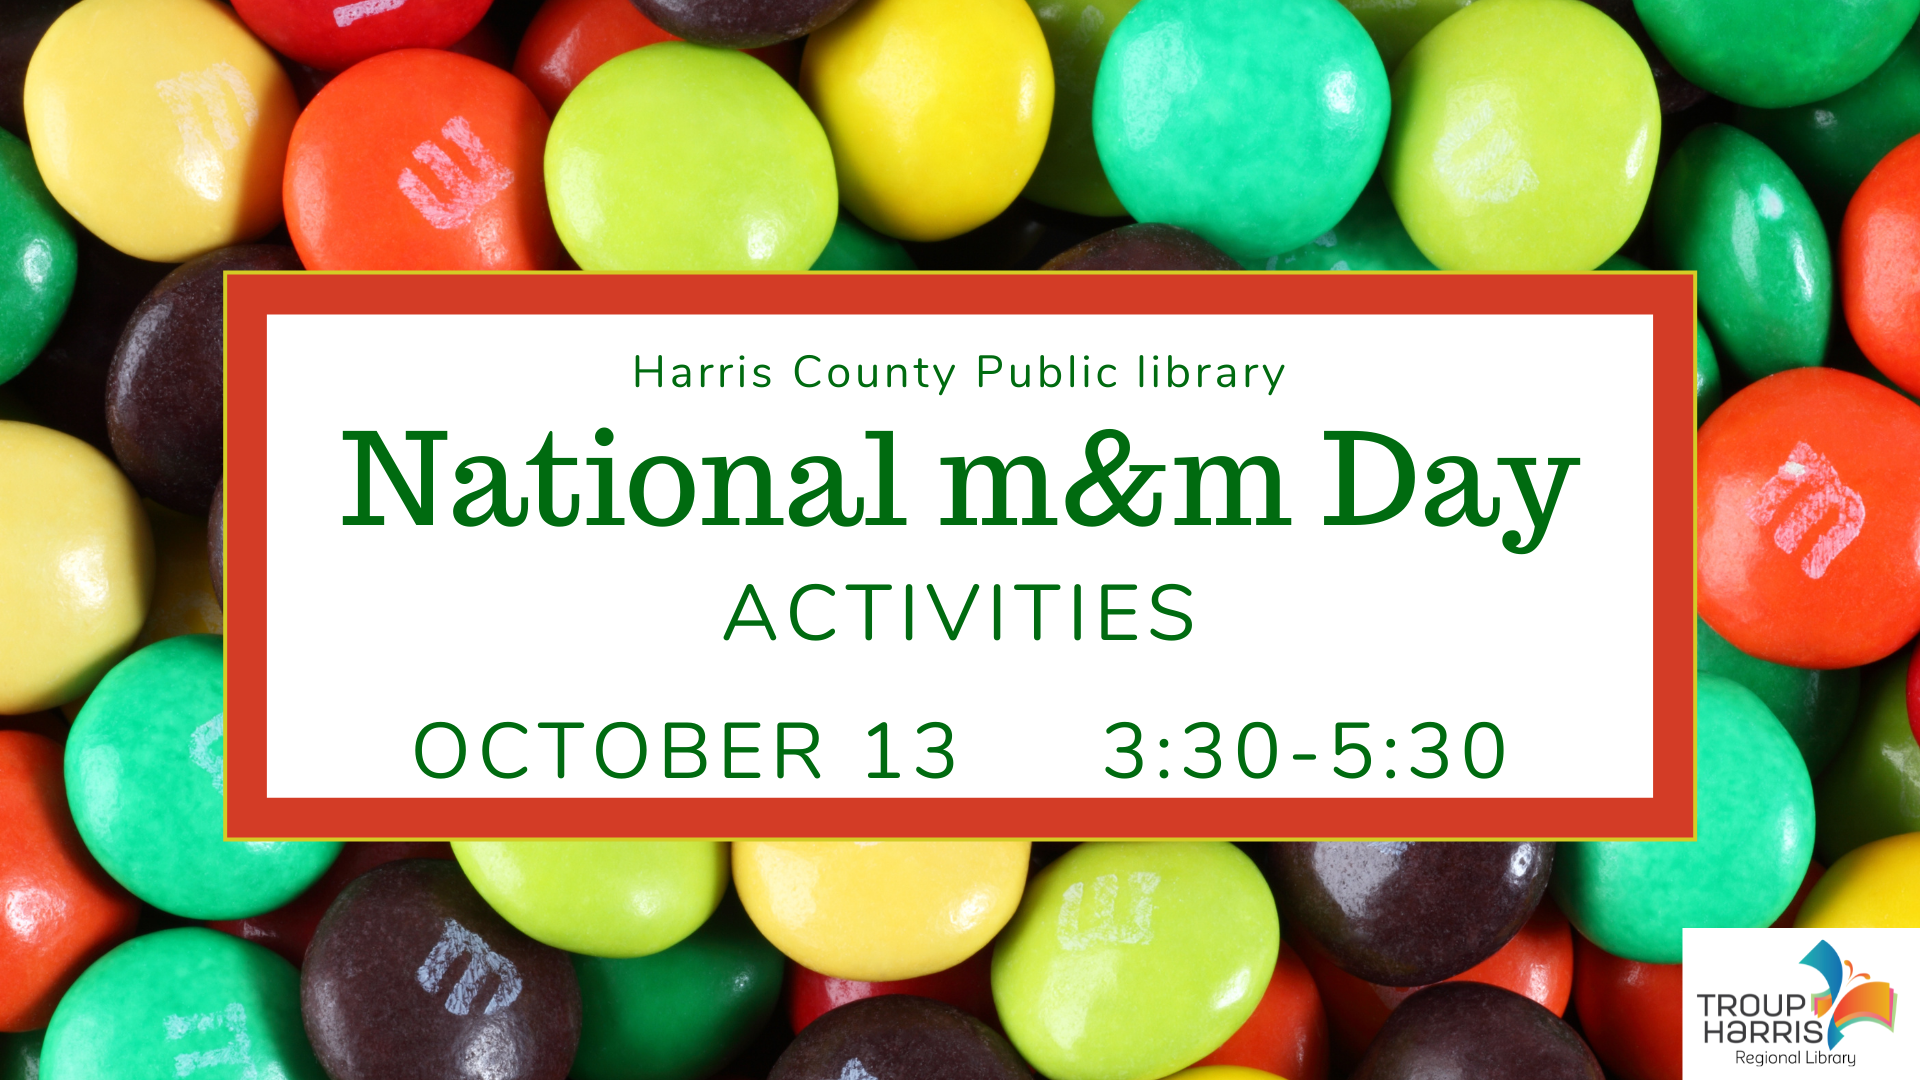 Come have fun with M&Ms at the Harris County Public Library on October 13 from 3:30 to 5:50 PM! Celebrate with games and activites with our favorite chocolate candy.